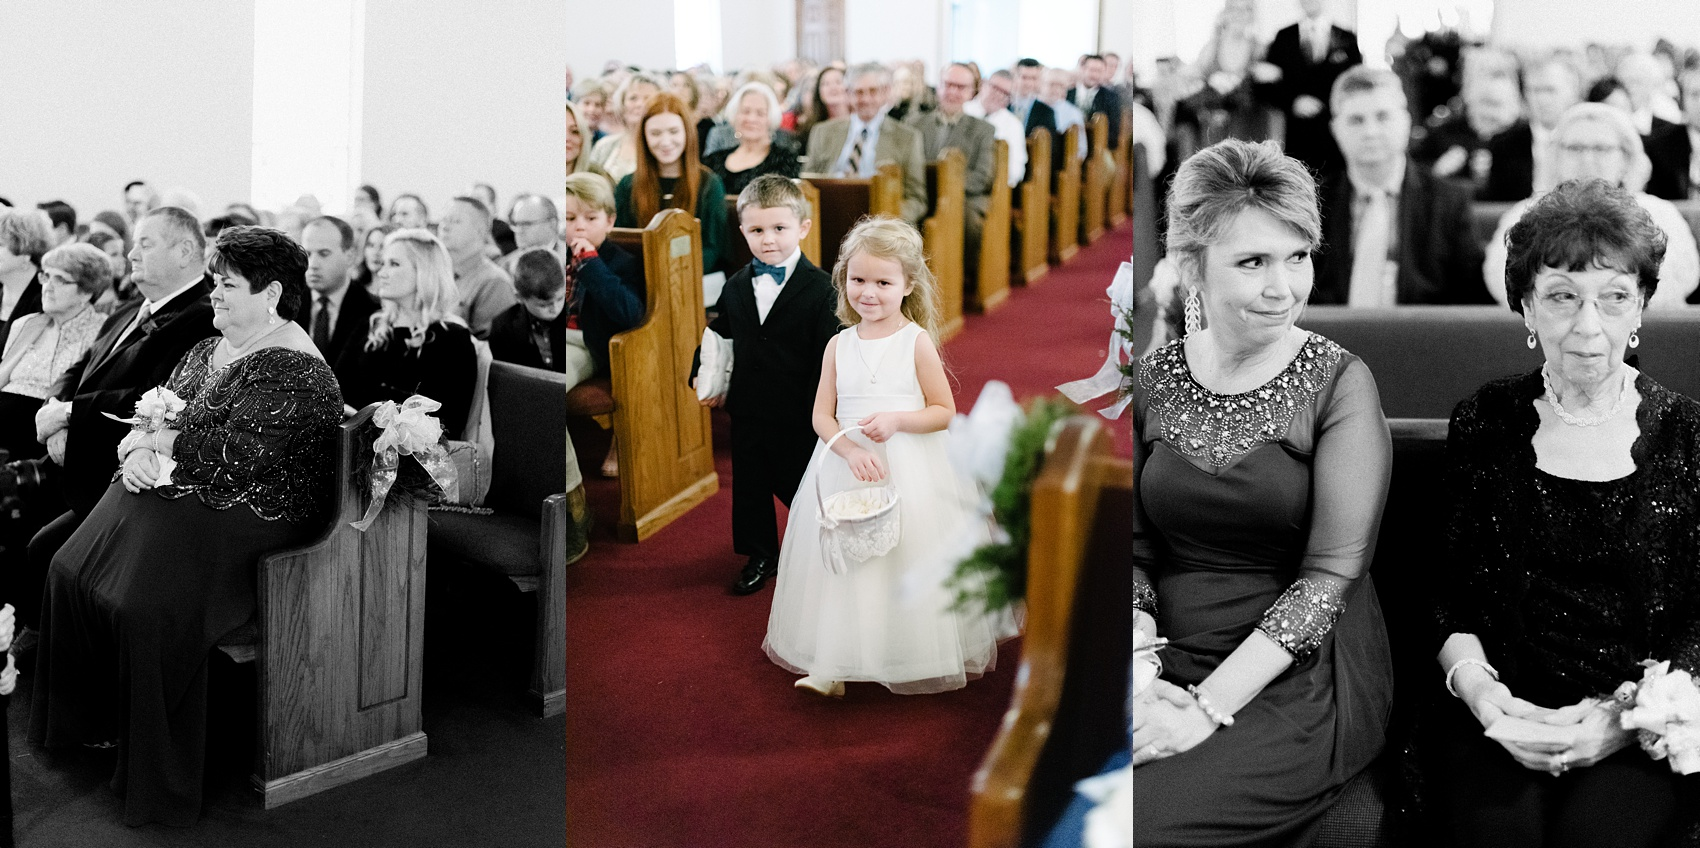 aiken_wedding_photographer_5060.jpg